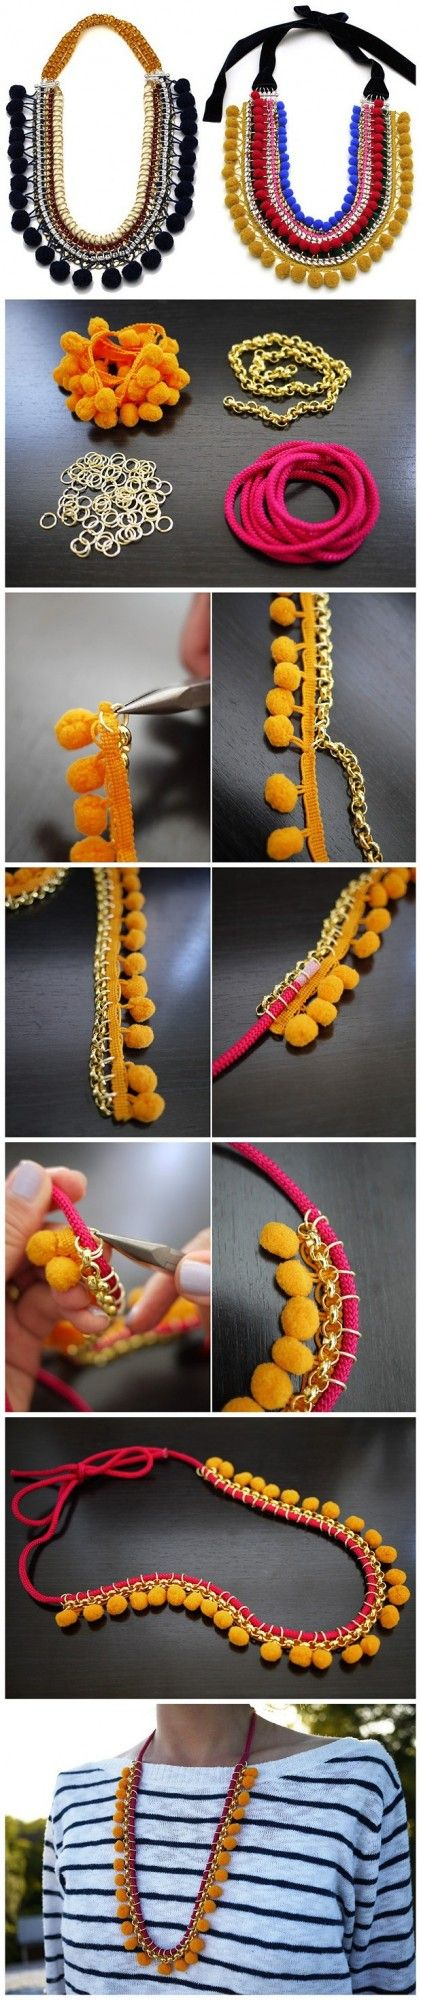 Funky statement necklace how to.  The pom pom trim is extra fun.